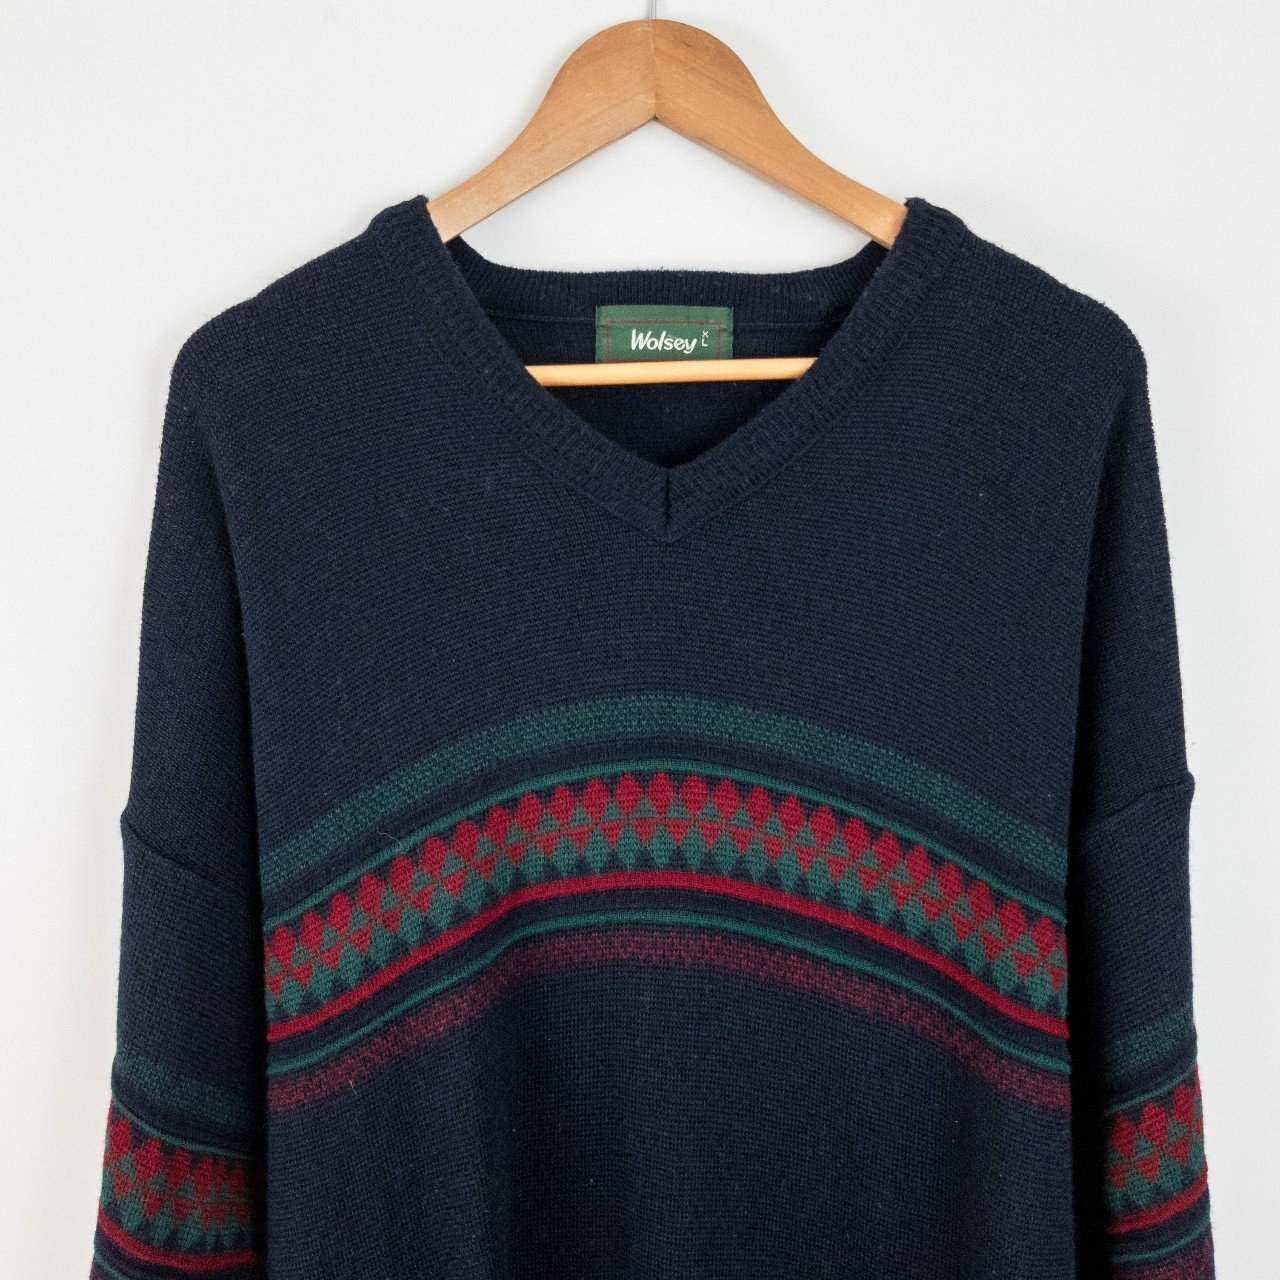 775c153c70e6 SALE 🎉 WAS £23.99 NOW £15.99 🎉 Vintage navy pattern knit - Depop